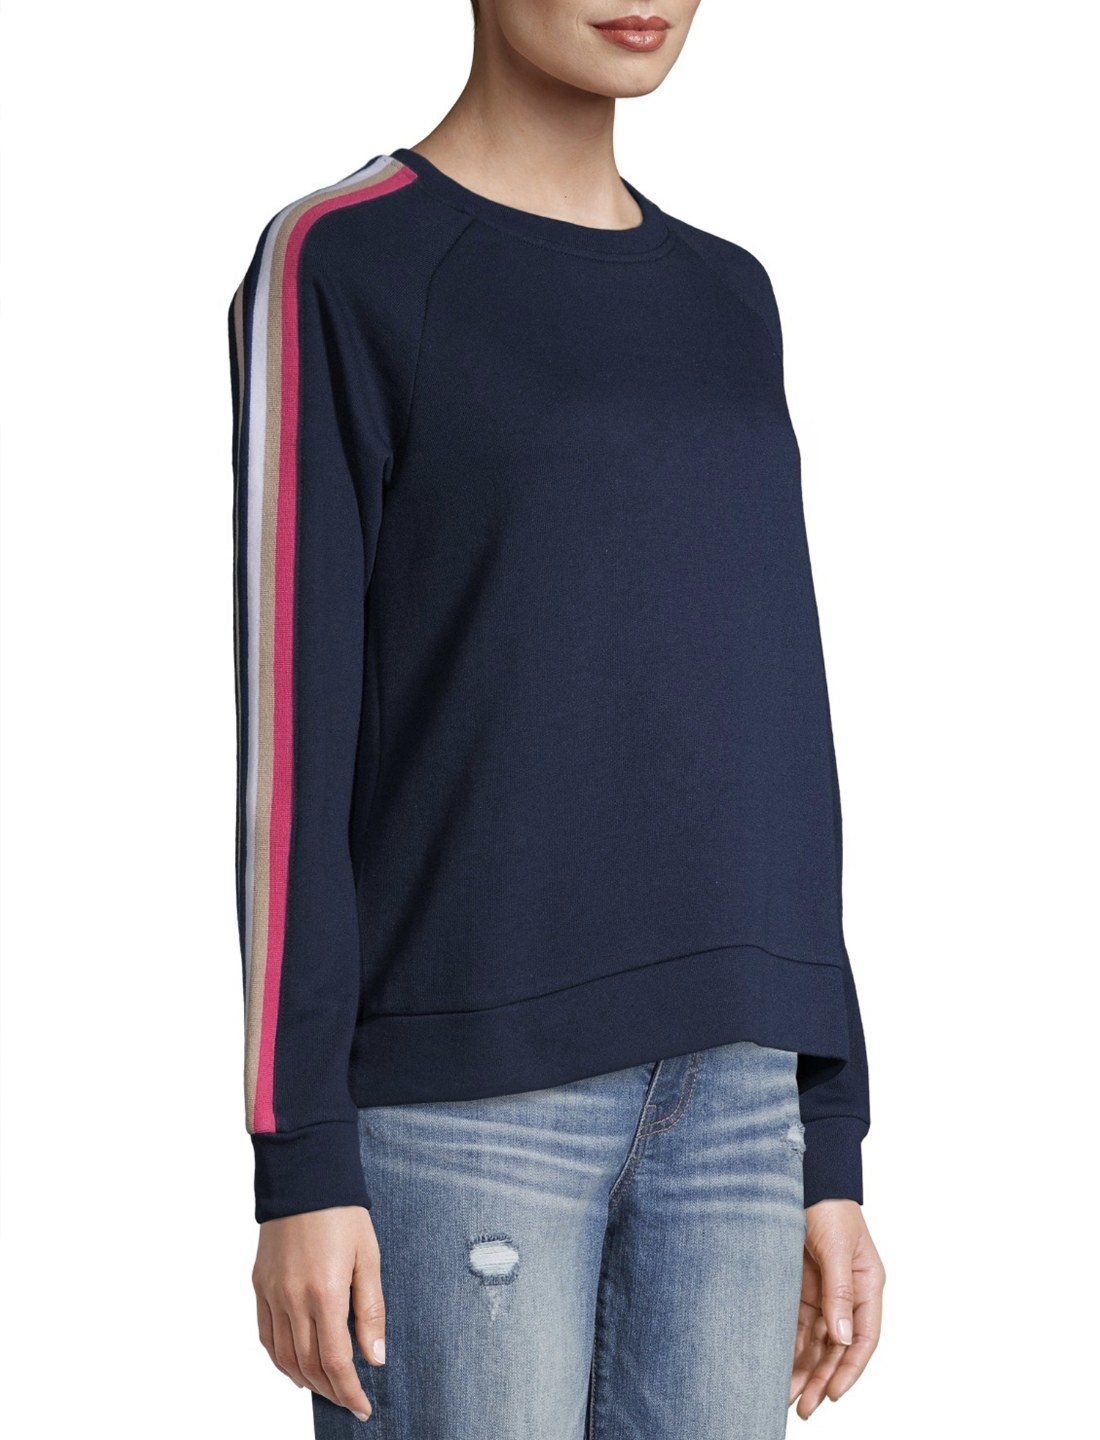 Model in navy blue sweatshirt with red sleeve stripes